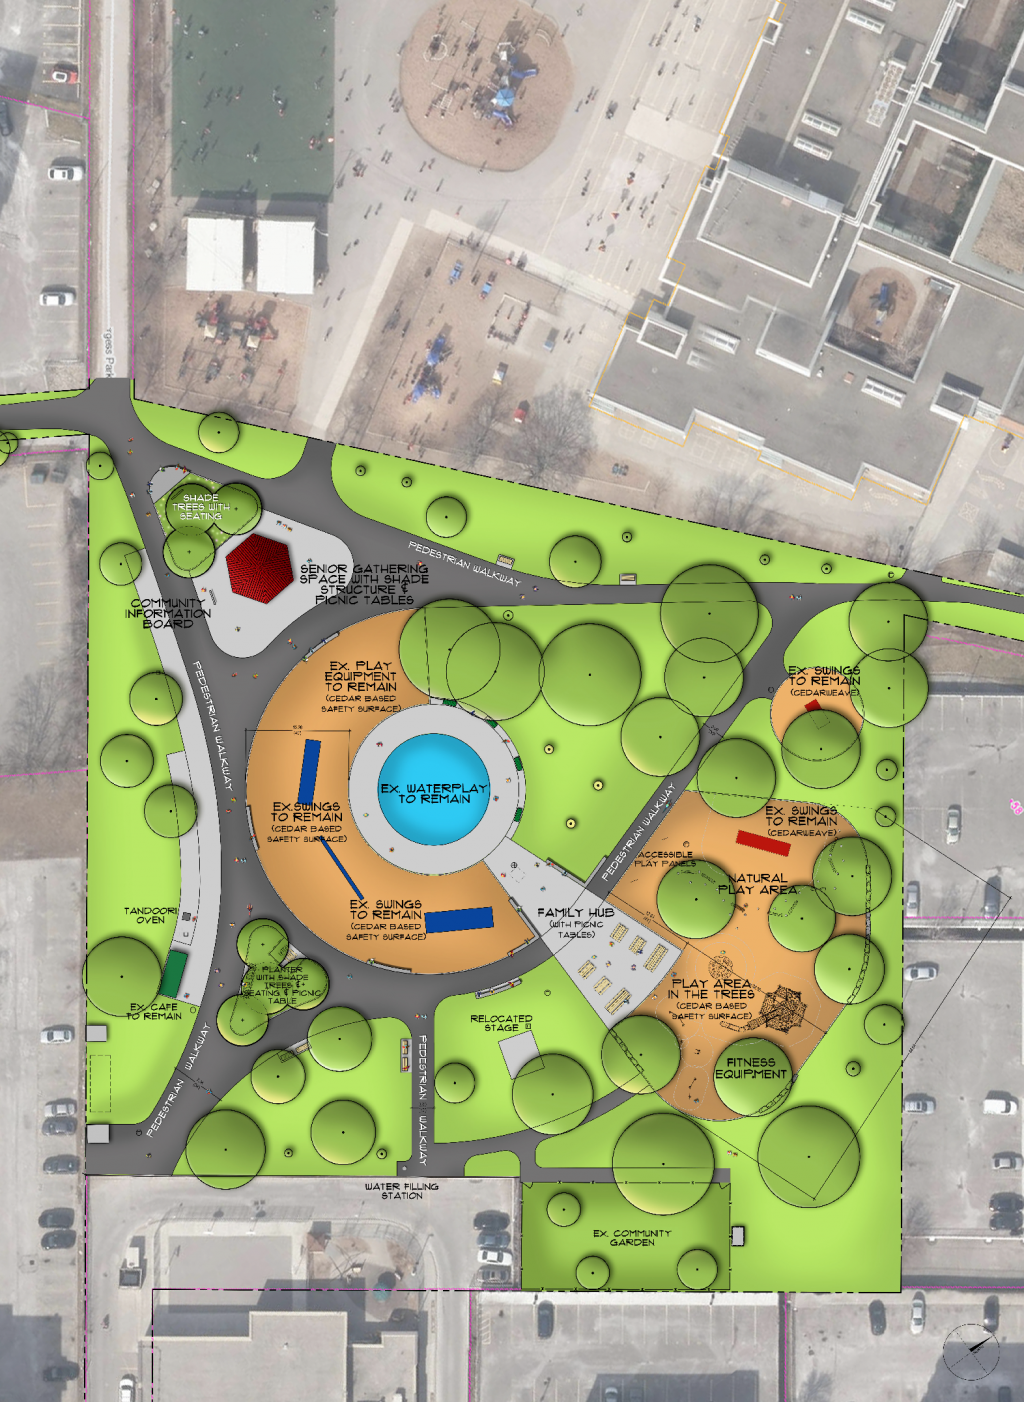 The final design for the R.V Burgess Park and Playground improvements includes new amenities such as accessible benches and picnic tables, upgrades to the drainage and sub-drainage system, concrete seat walls at the splash pad and play areas, outdoor fitness equipment elements and a shade shelter with a community information board. The existing pathway system will be upgraded to align with major north-south and east-west travel routes.